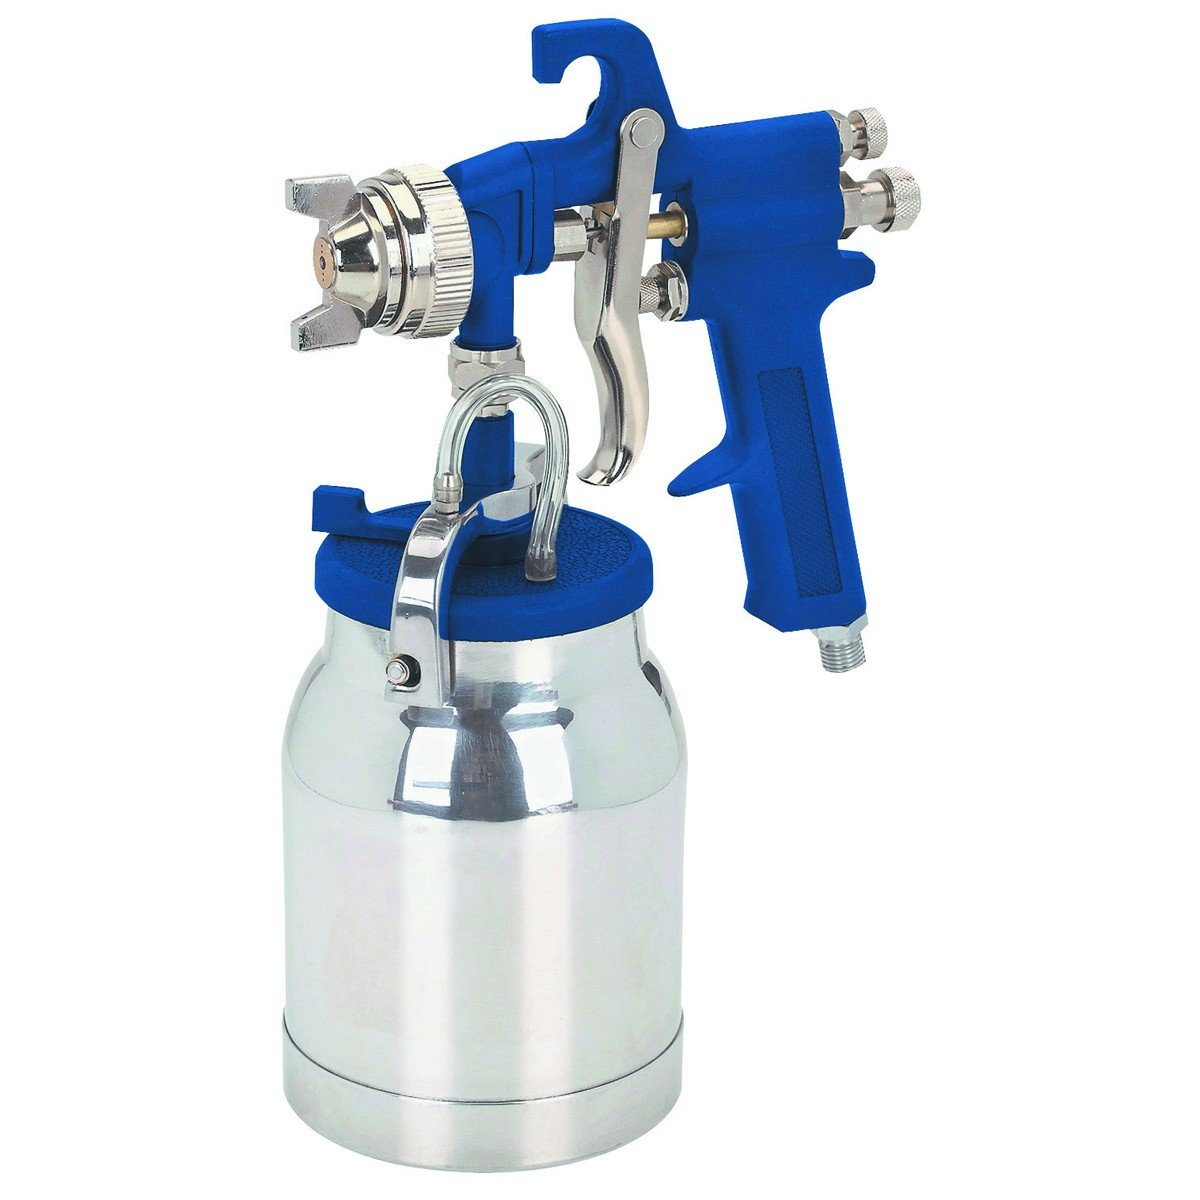 32 Oz. Lightweight High Pressure Spray Gun